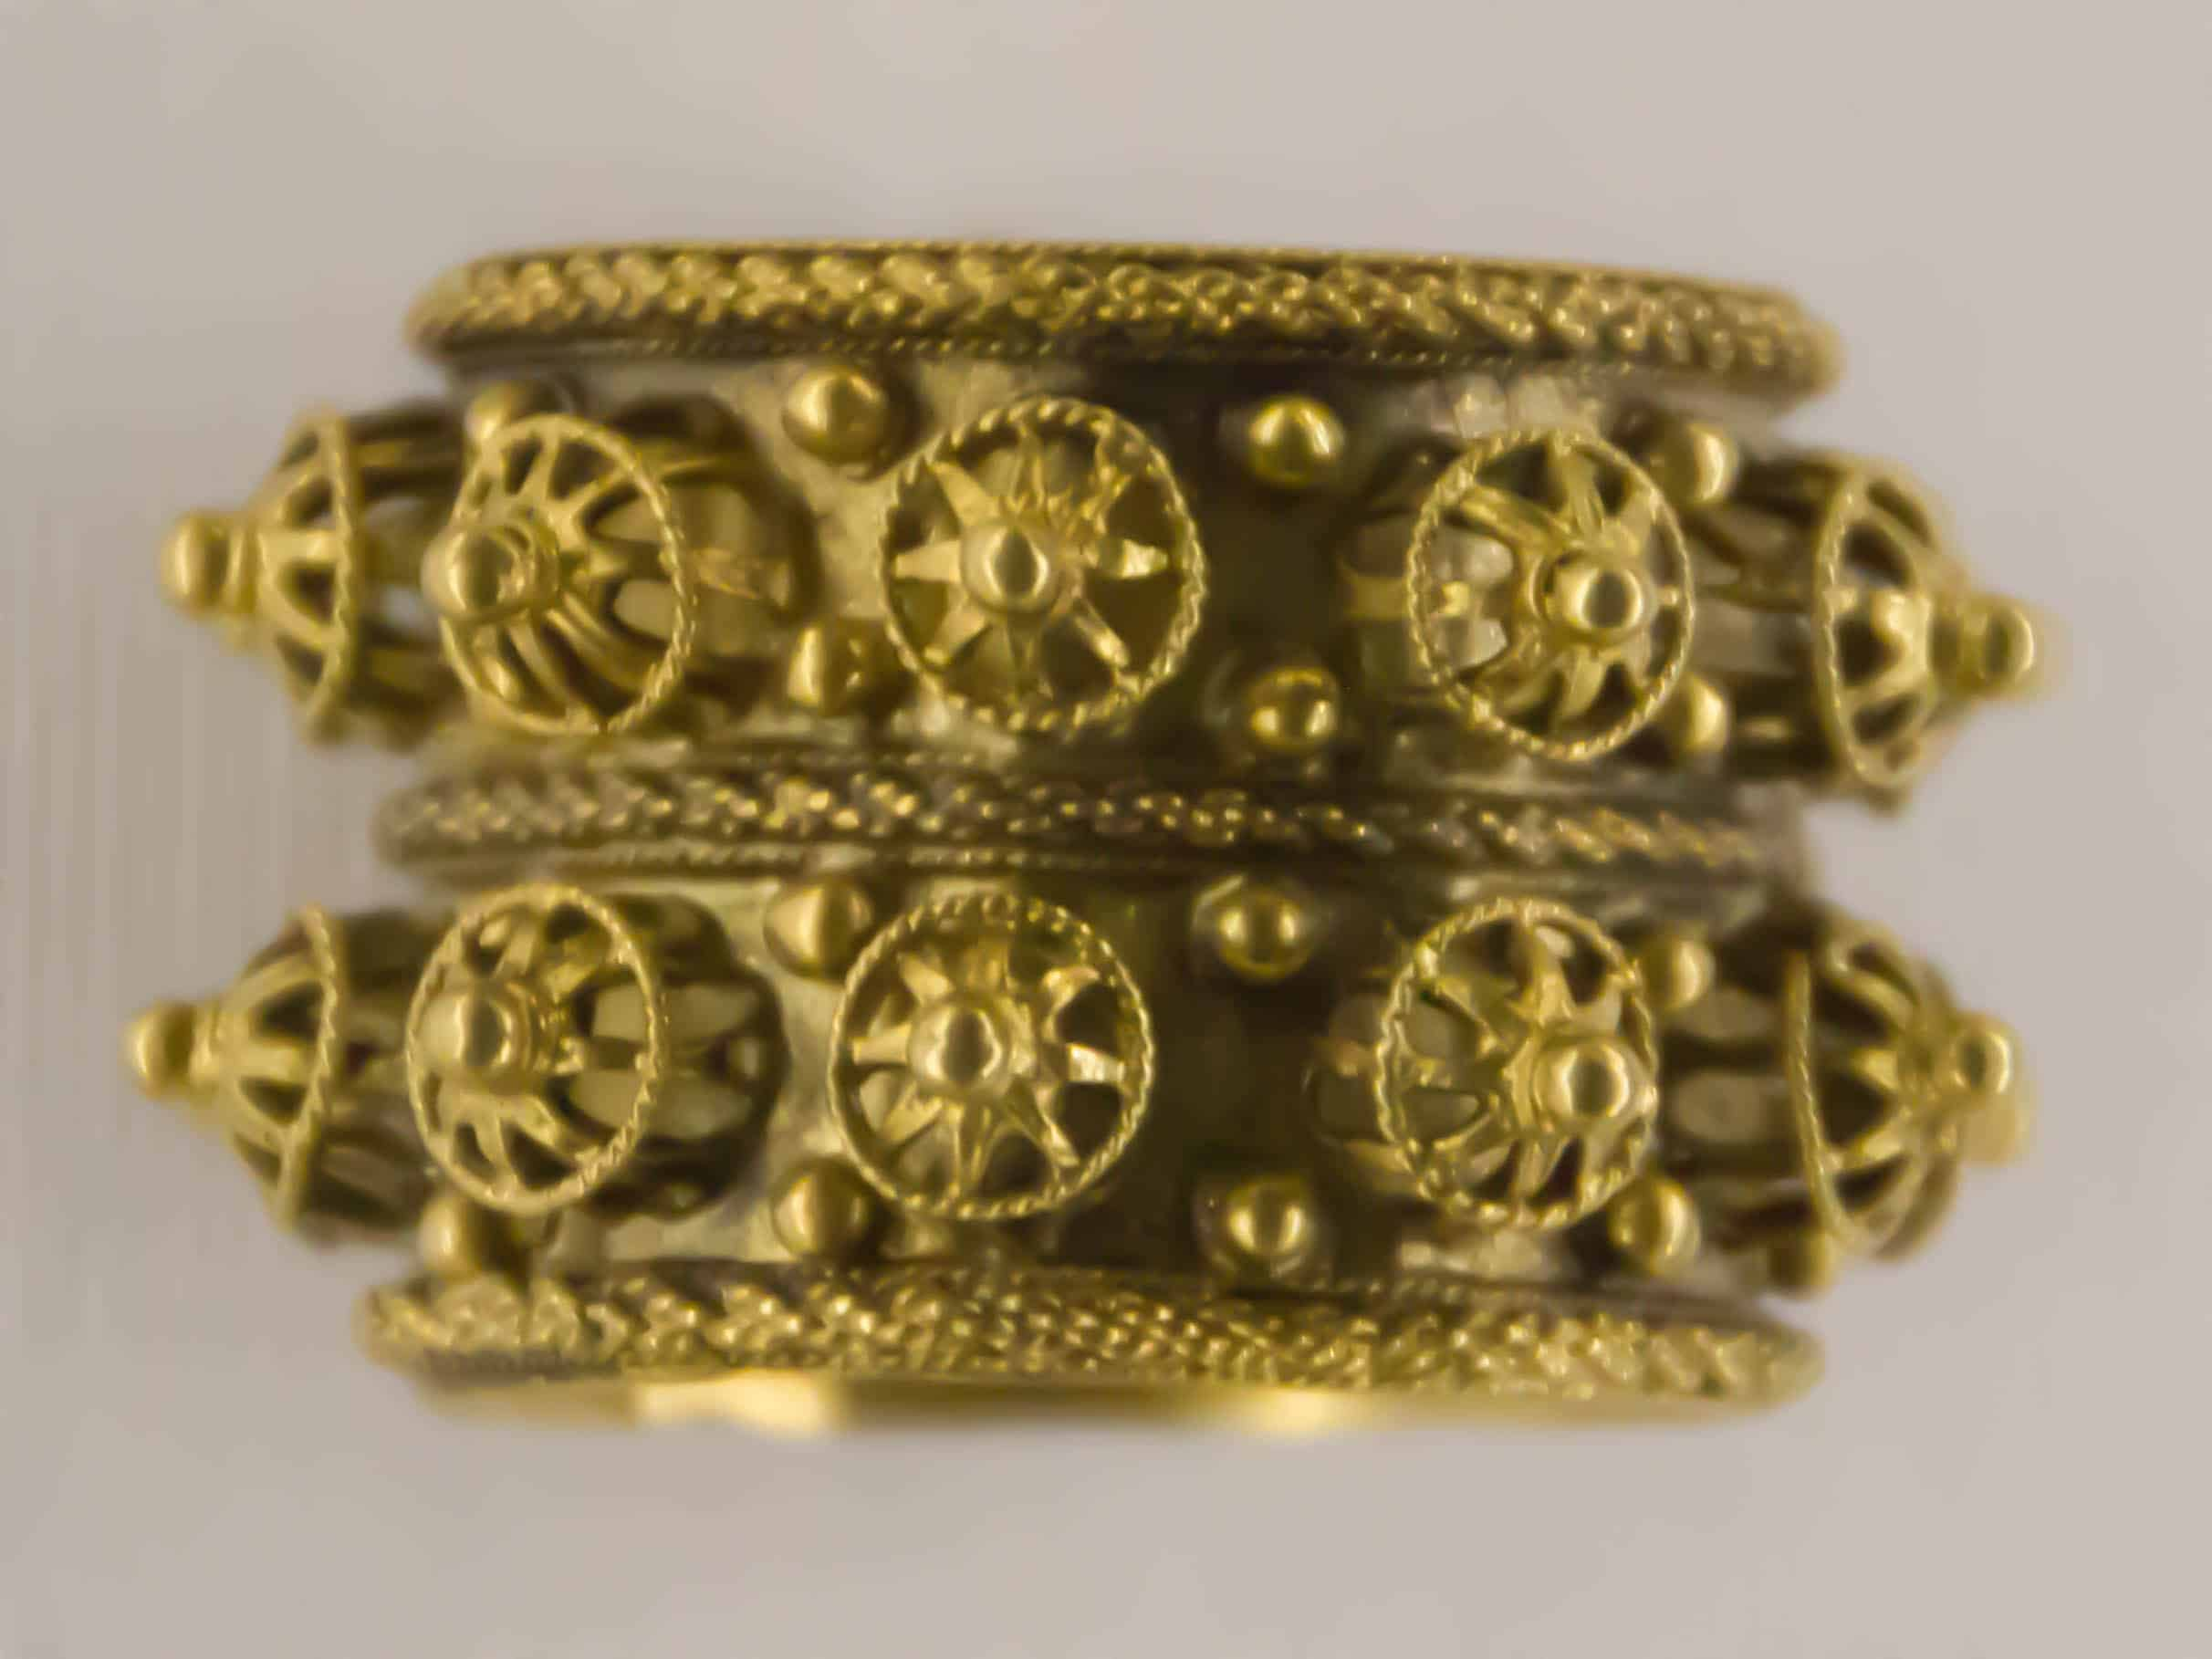 Jewish Wedding Ring Gold 18th 19th Cen Venice.jpg